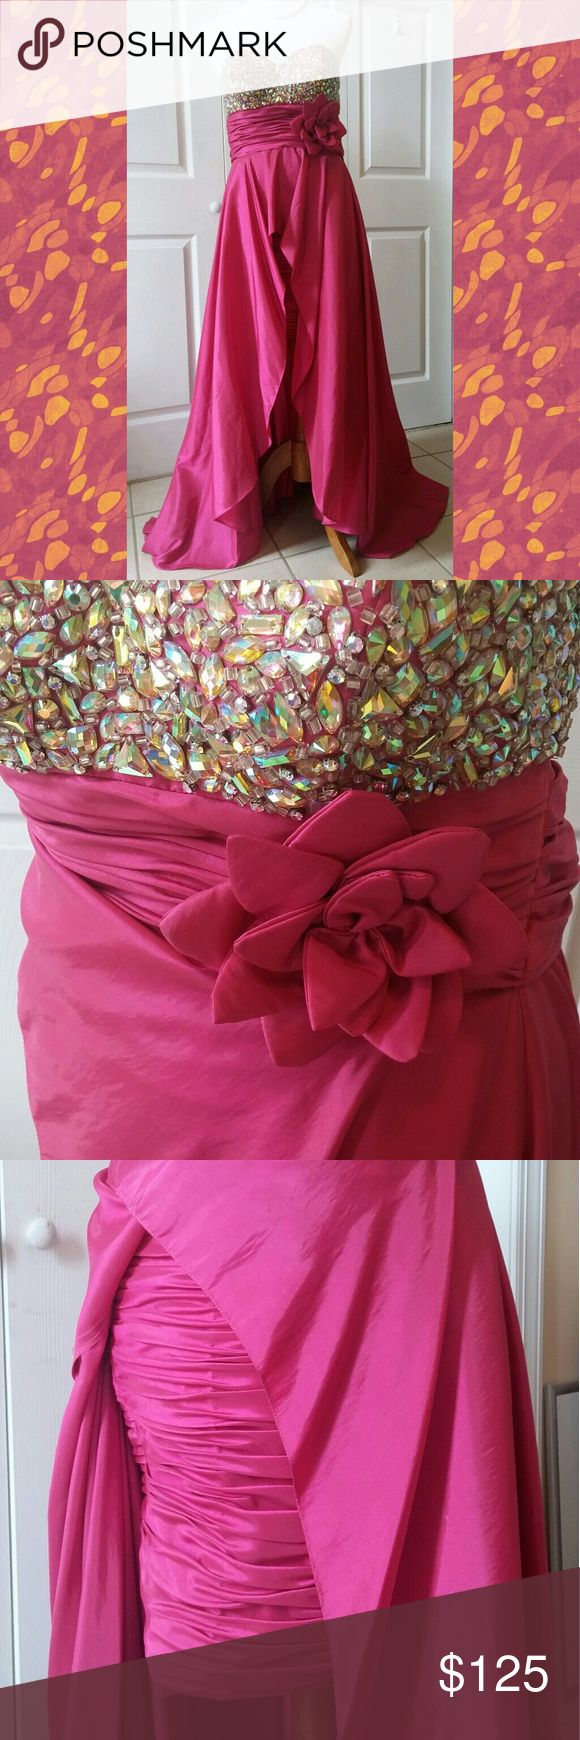 """Gorgeous gown Beautiful strapless tafetta formal dress with jeweled bodice and wrap. Short ruched skirt with long detachable overlaid skirt. Skirt is 19"""" from waist. Over-skirt is 44"""" from waist to end of train. Wrap is 76""""x18"""". Tag says to only spot clean - do not dry clean. Panoply Dresses Strapless"""